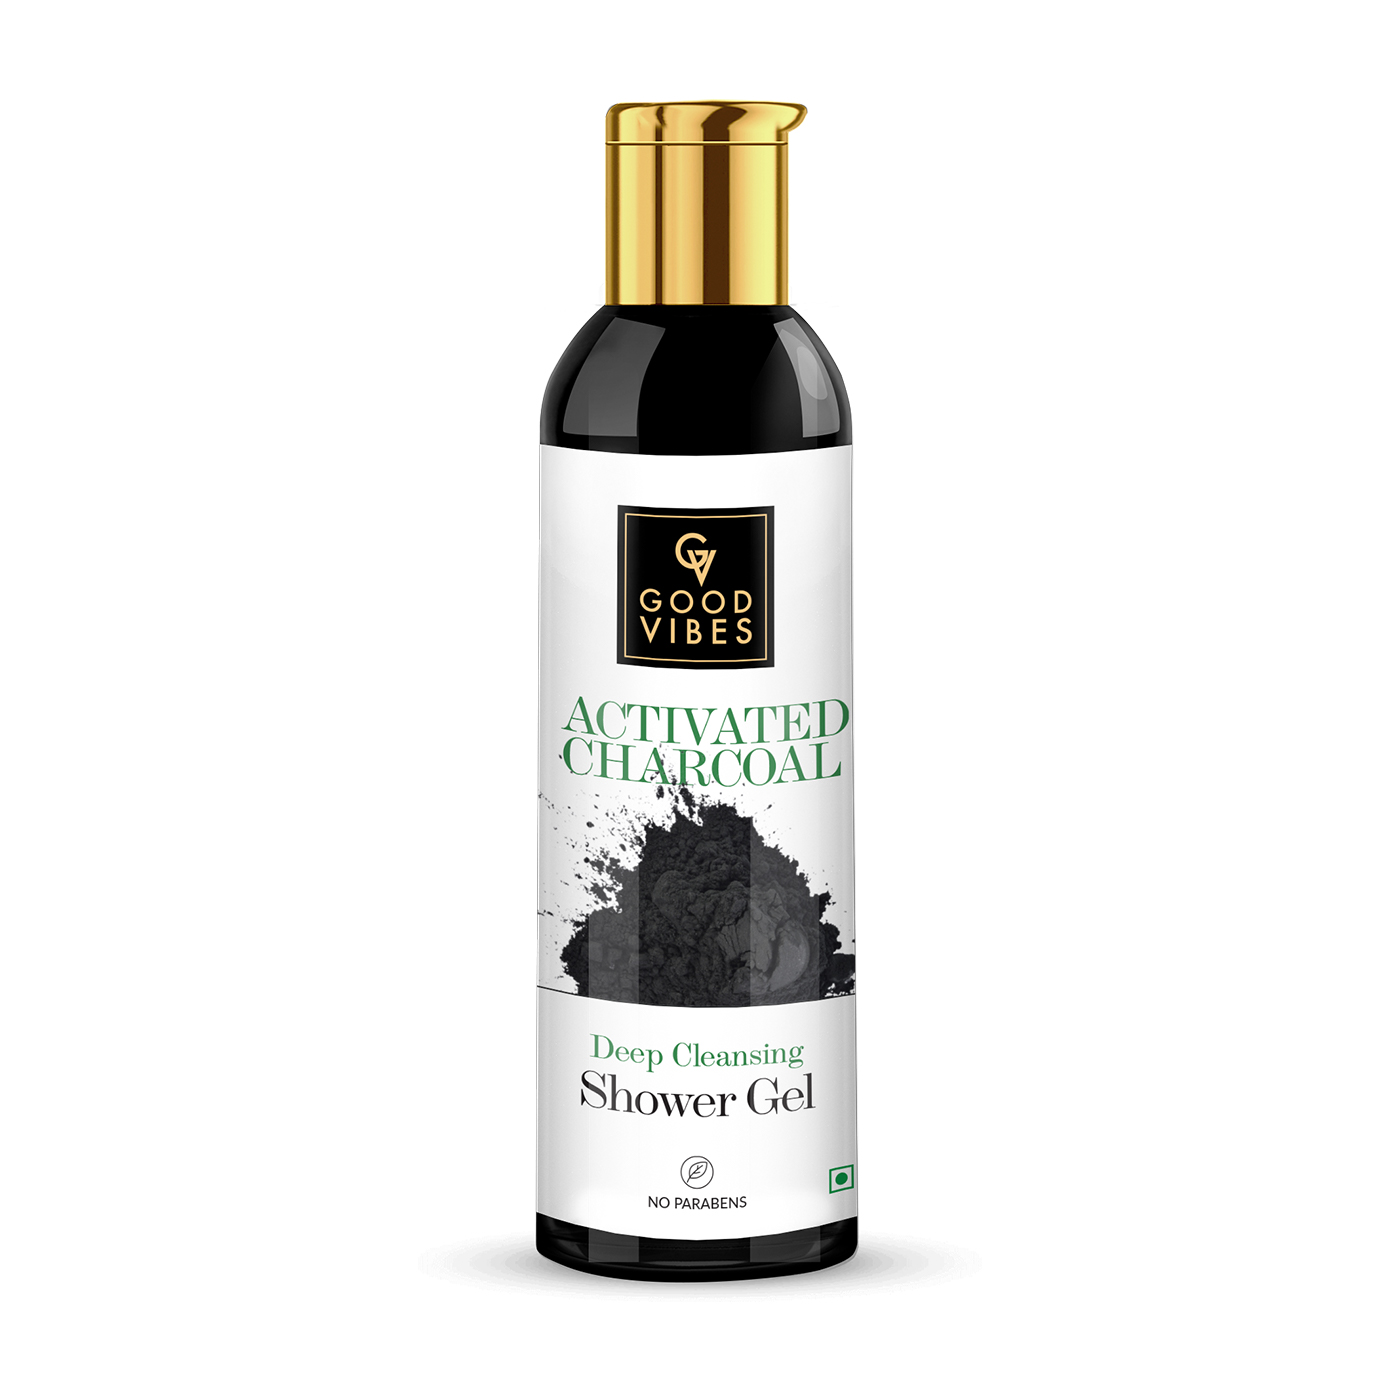 Good Vibes | Good Vibes Deep Cleansing Shower Gel (Body Wash) - Activated Charcoal (200 ml)